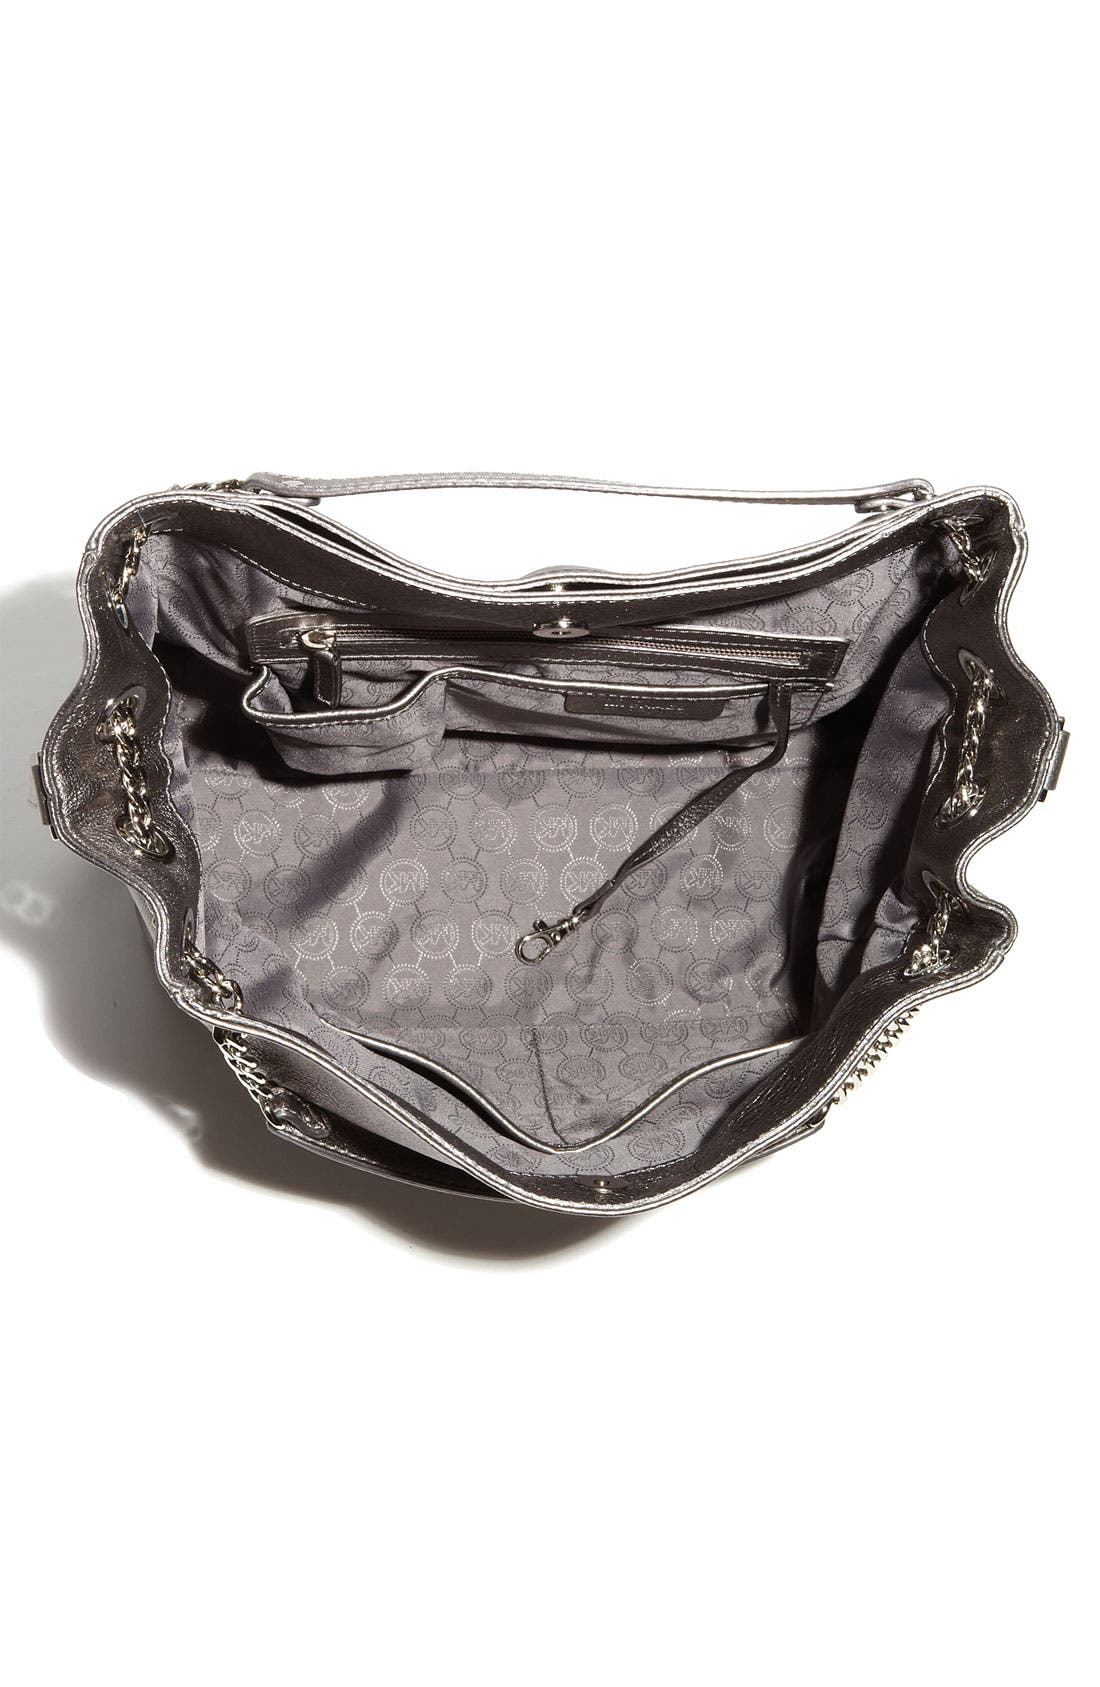 Alternate Image 3  - MICHAEL Michael Kors 'Jet Set - Large' Metallic Leather Shoulder Tote